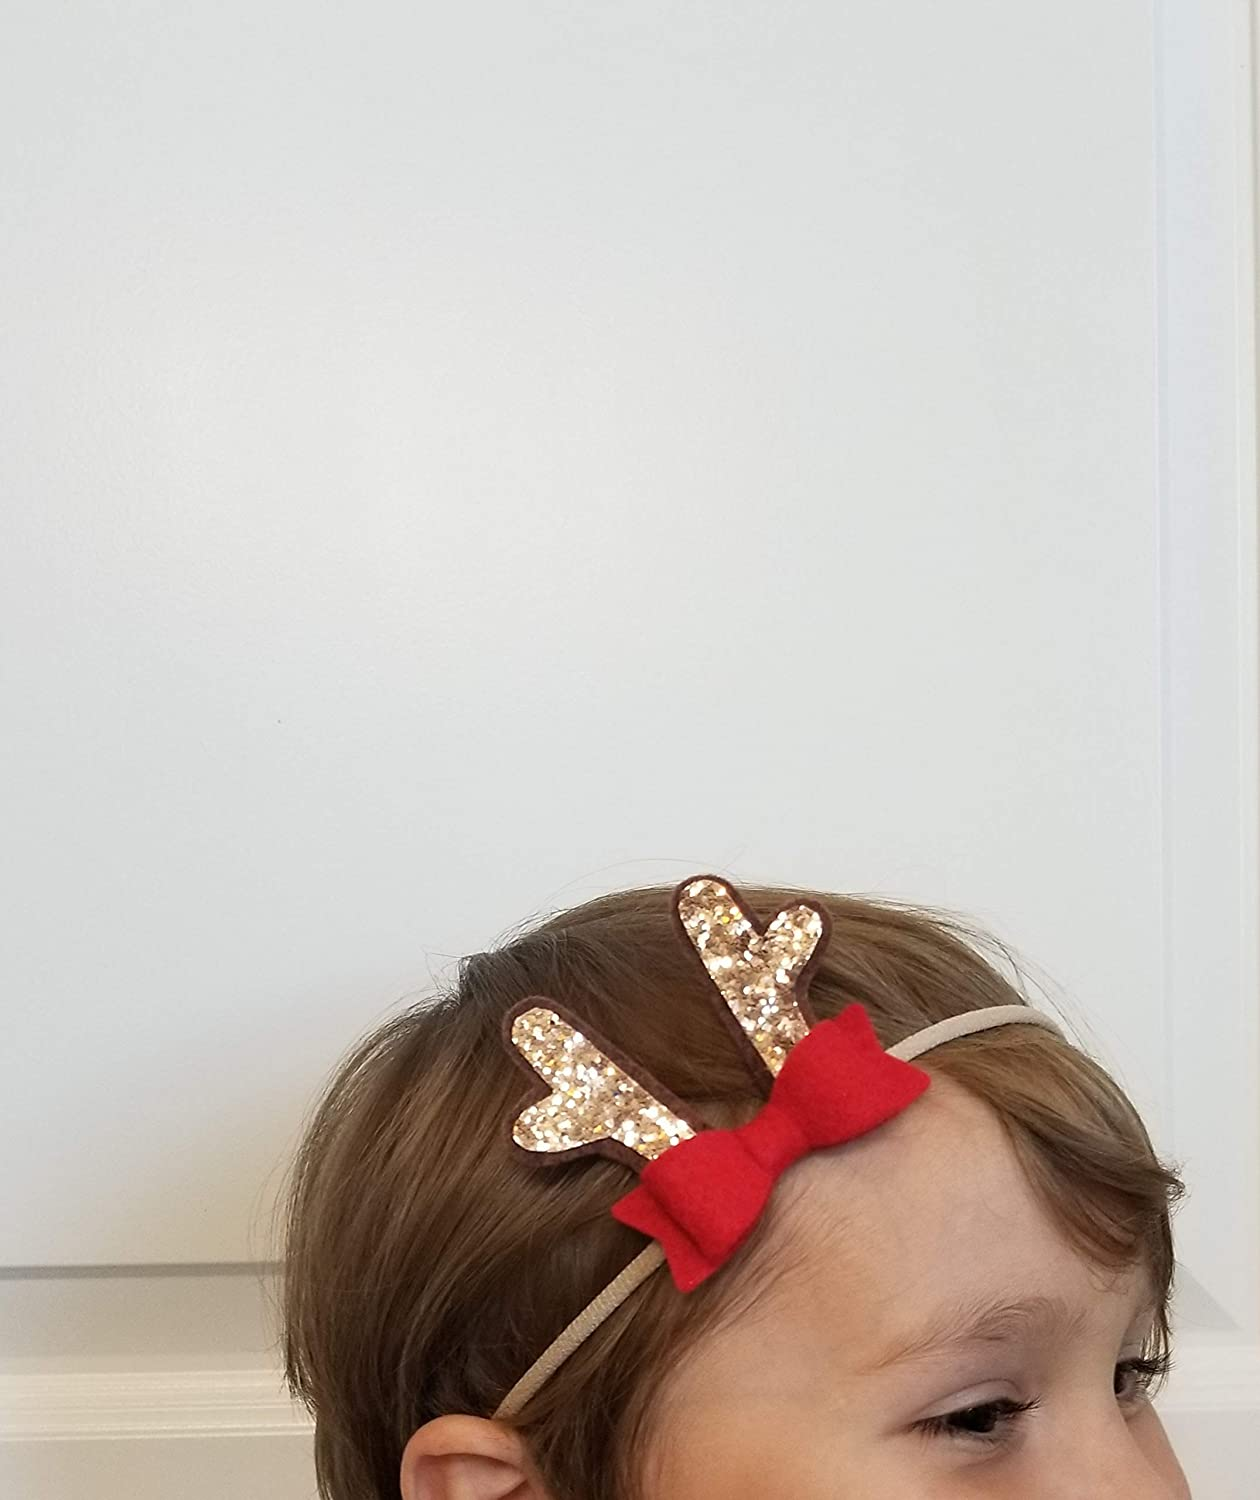 Christmas Headbands For Babies.Baby Christmas Headbands Mini Reindeer Antlers Red Bow